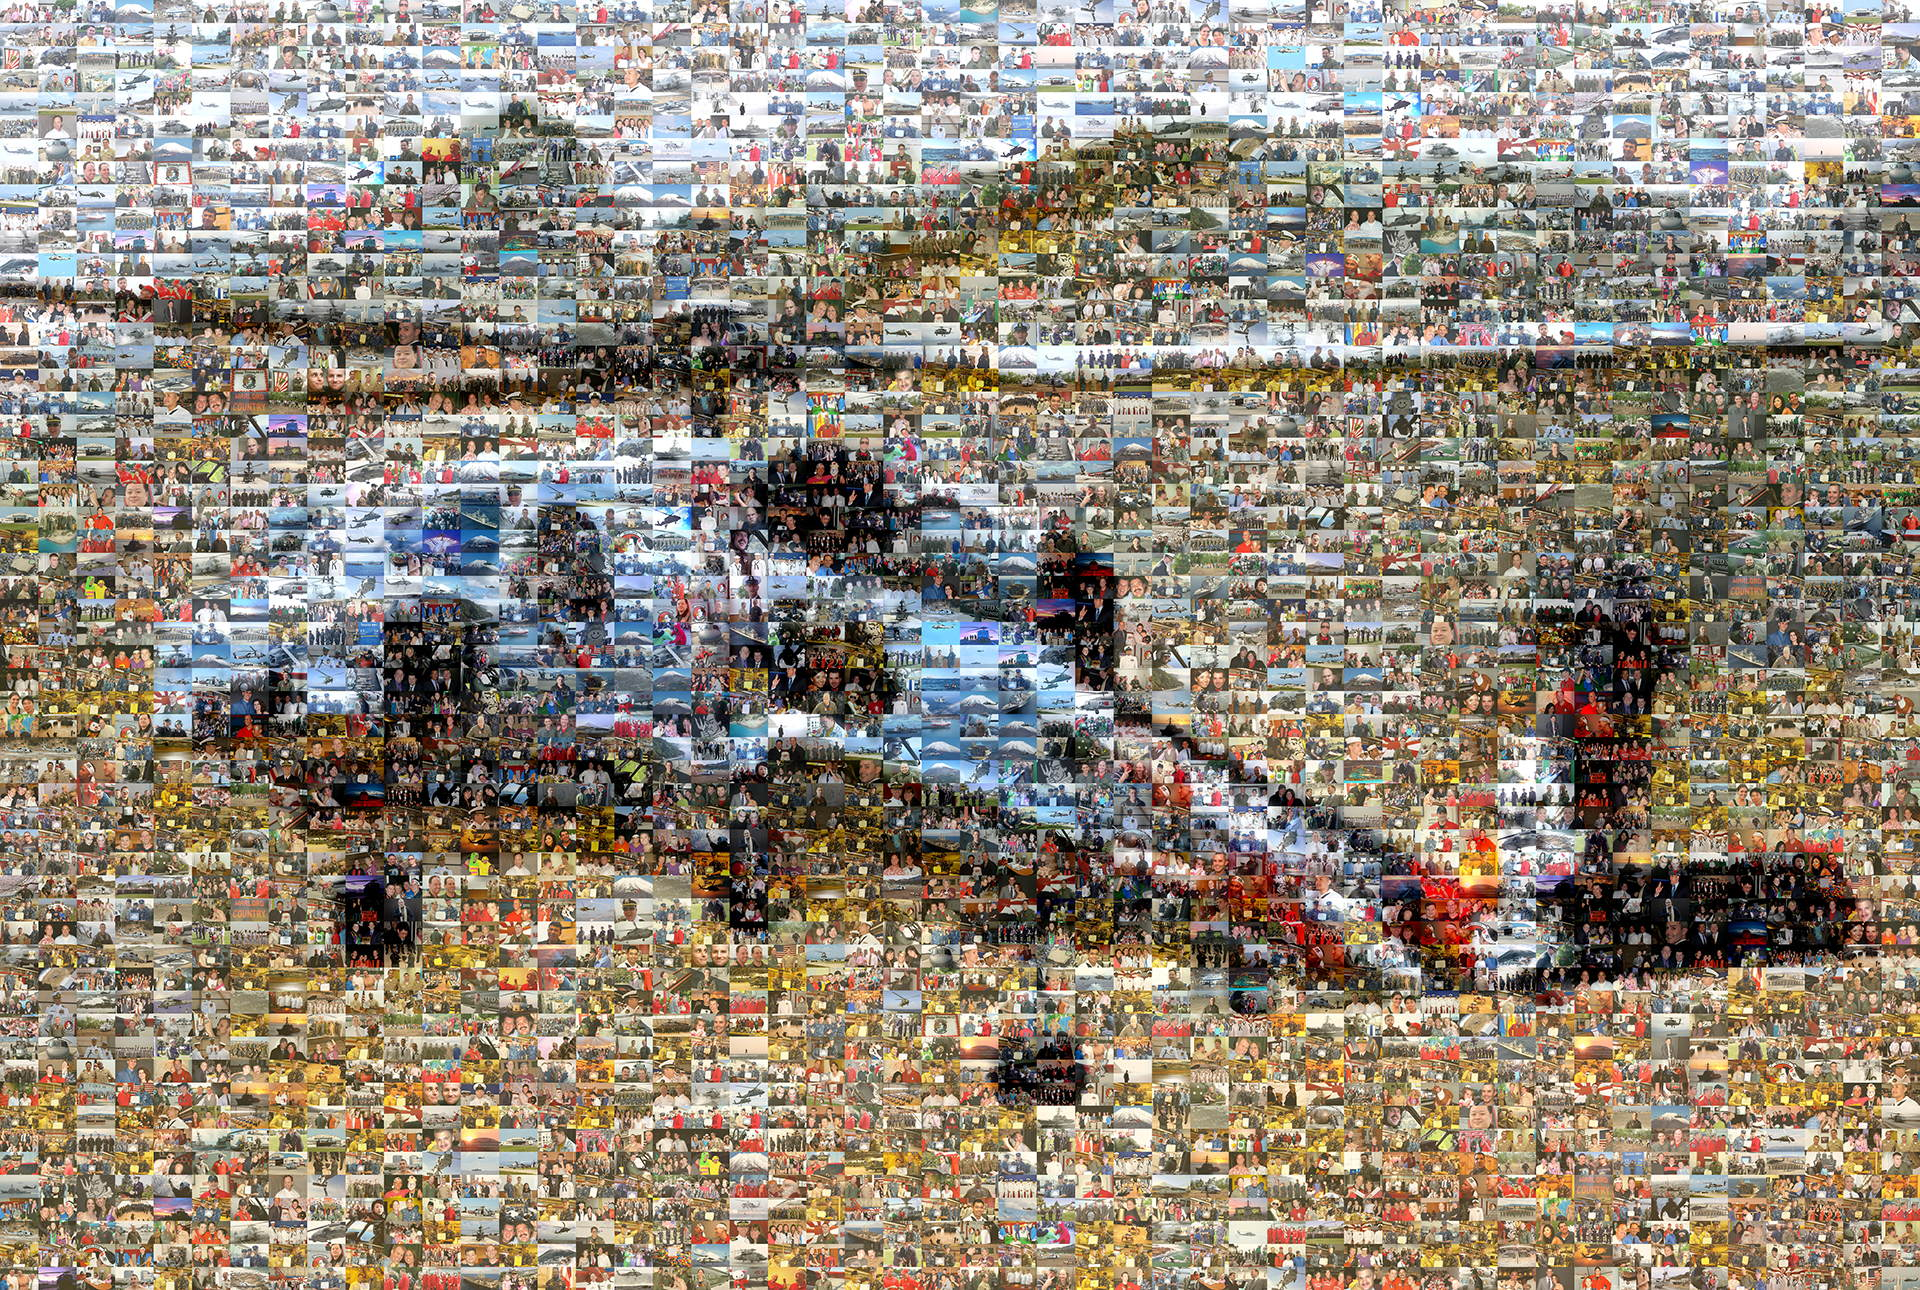 photo mosaic created using 786 custom photos